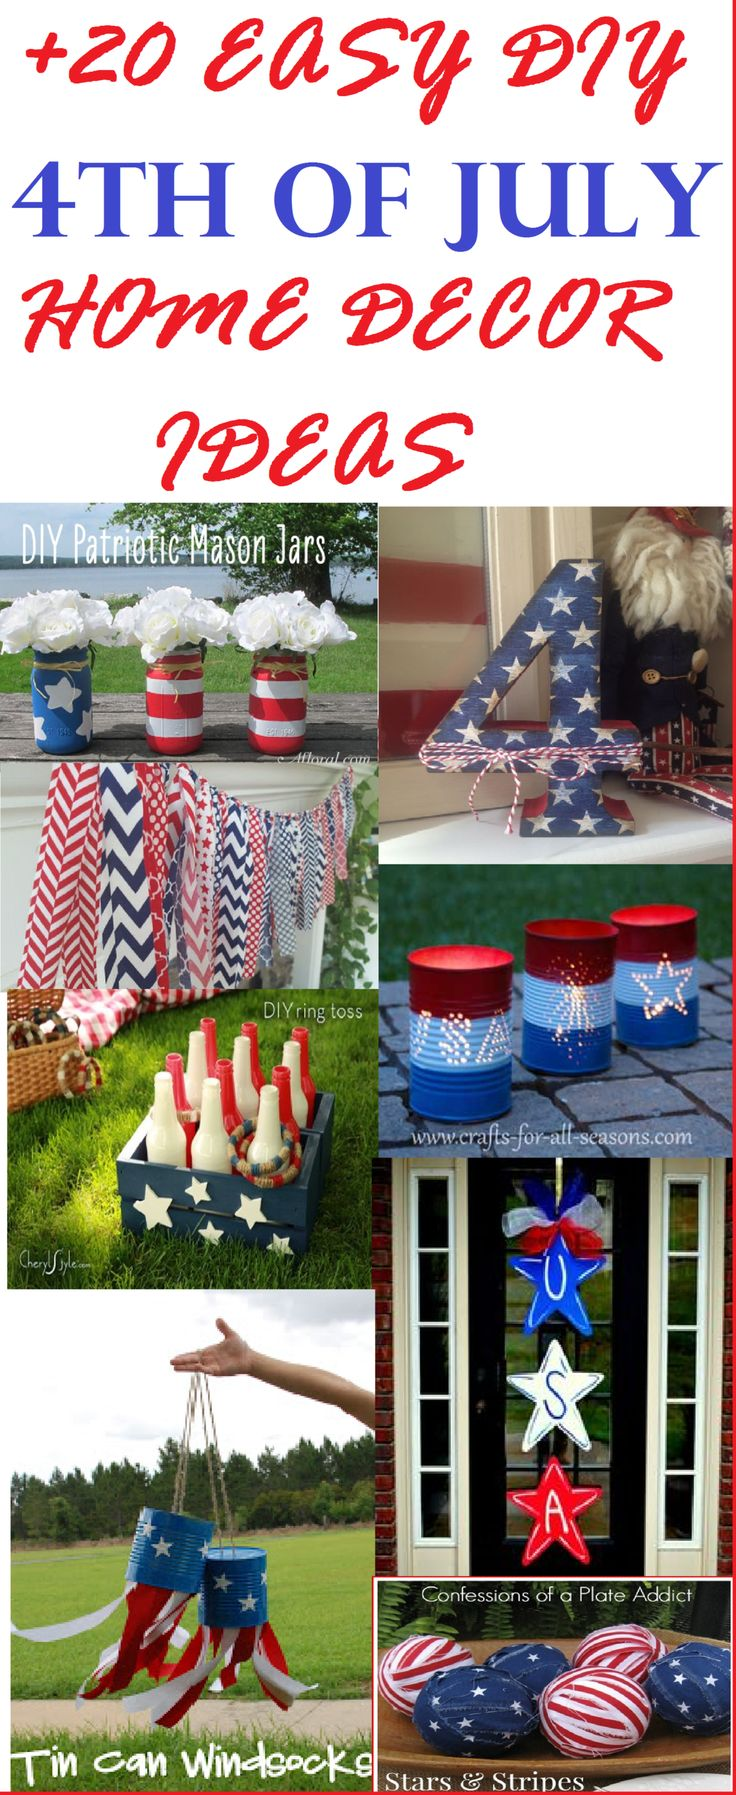 DIY your own July 4th holiday decor- Over 20 easy DIY 4th of July decorations...Thrifty Divas DIY